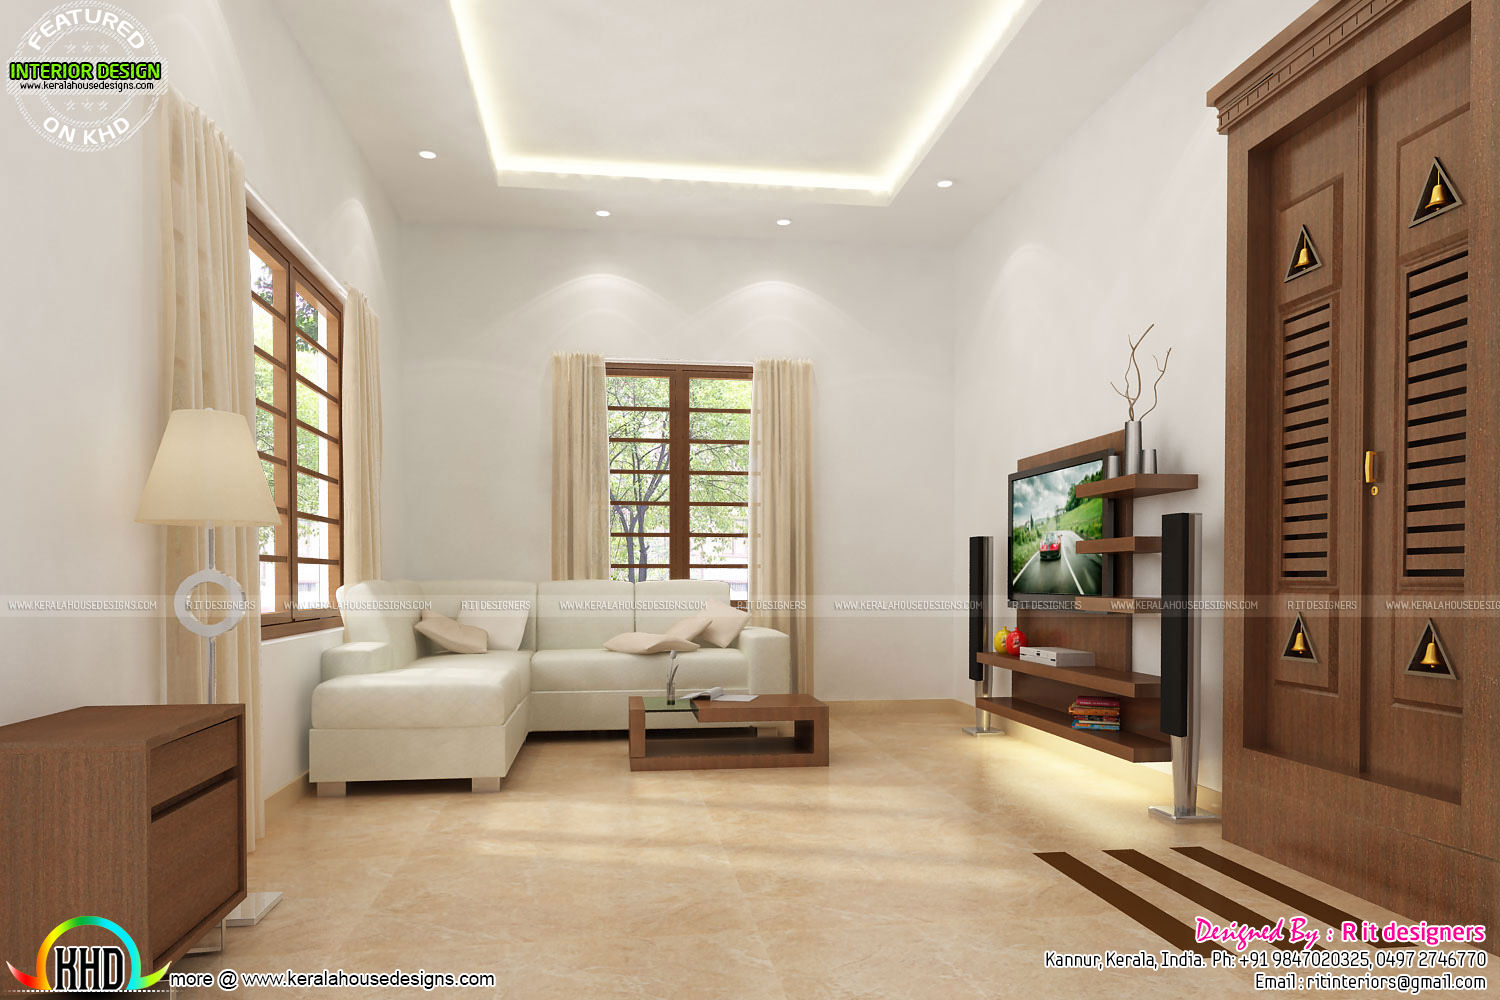 House interiors by r it designers kerala home design and for Kerala interior designs